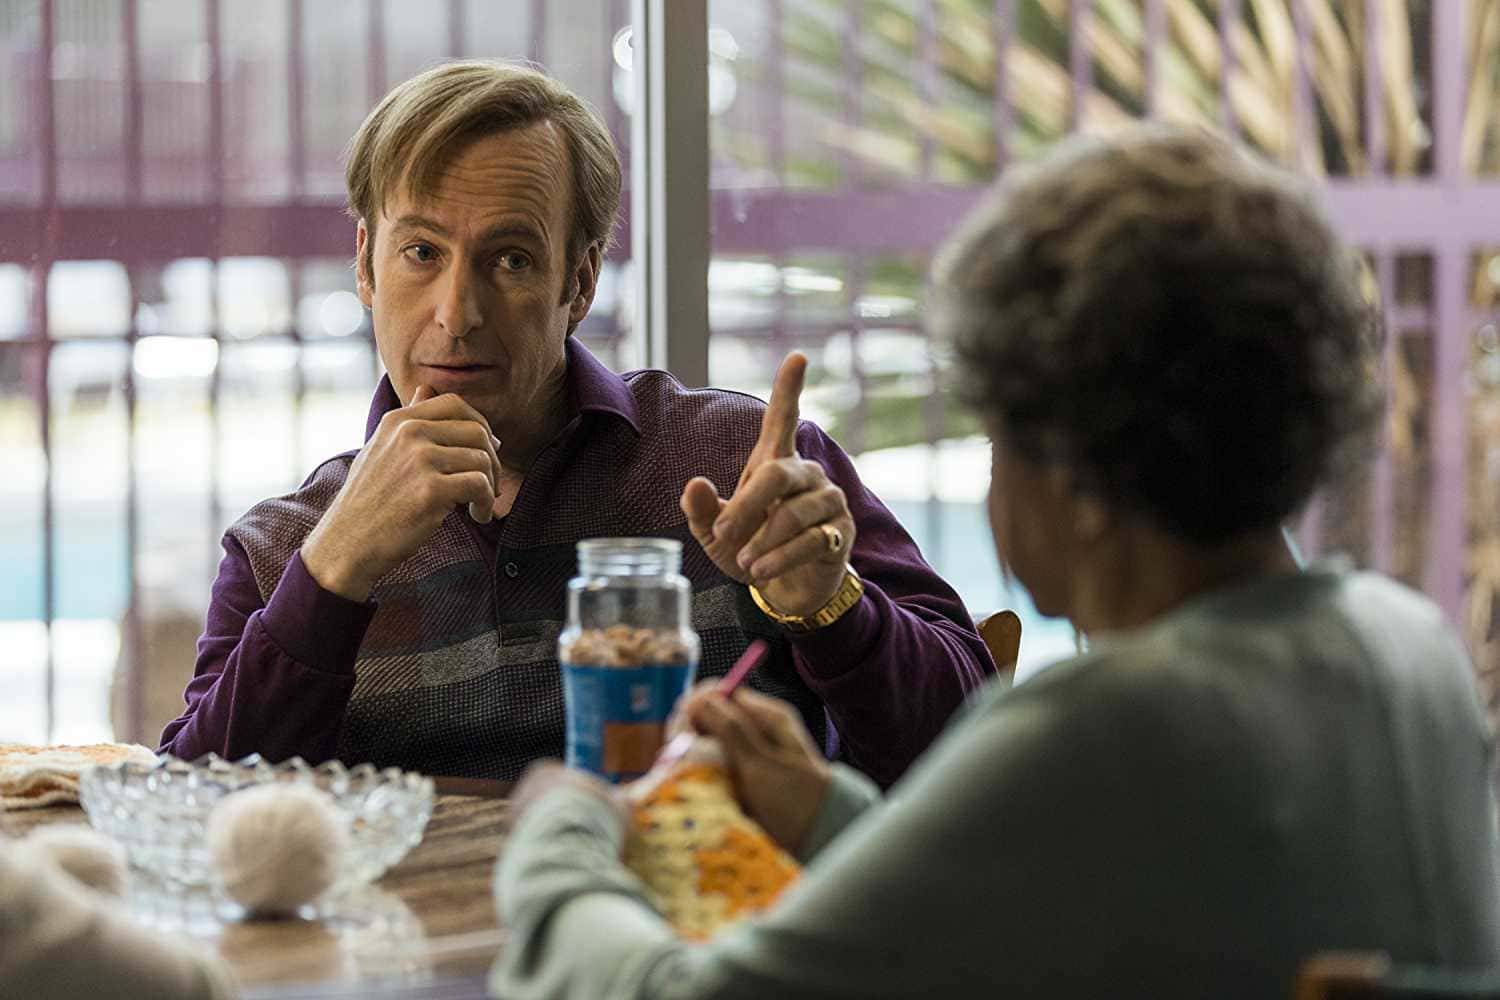 'Better Call Saul' is returning for a fourth season in August (Source: IMDb)